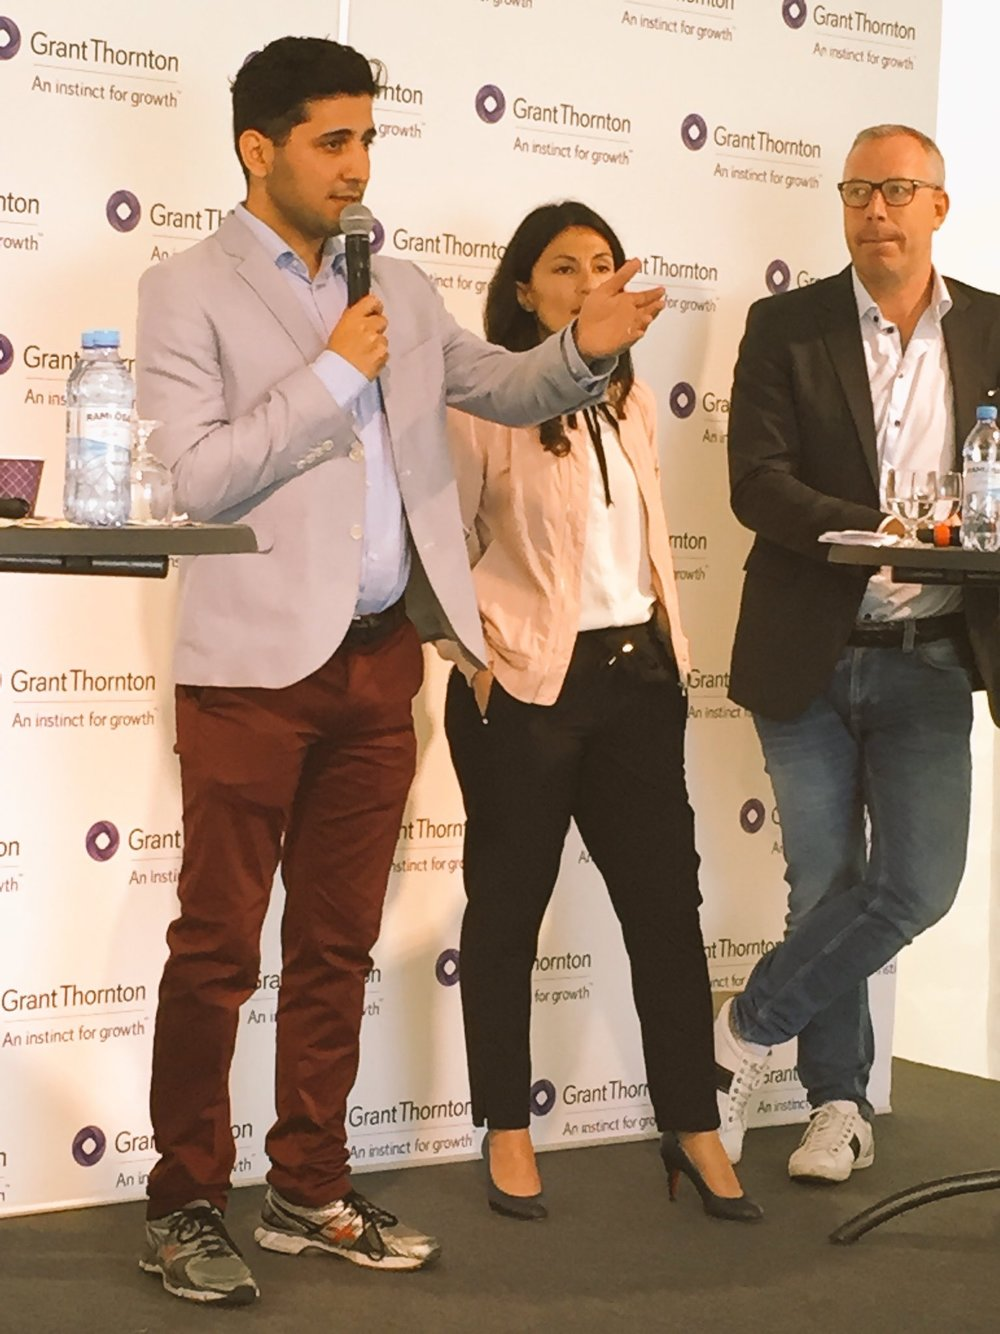 Panel Med Grant Thornton kring integration i Almedalen